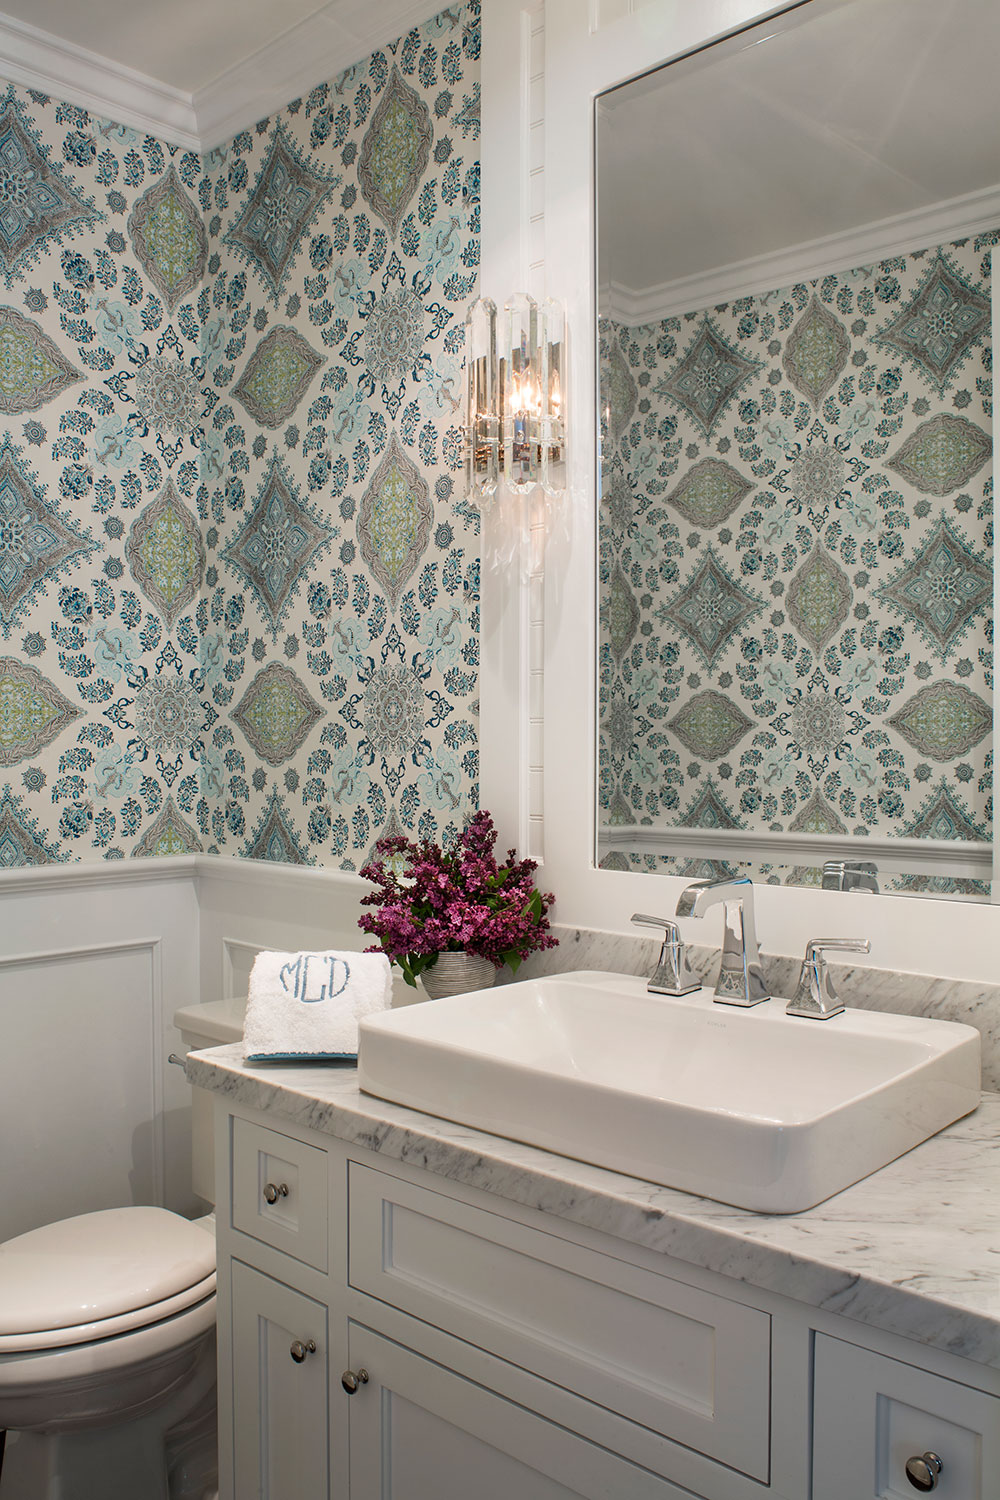 Home Design And Decor Trends To Look Out For In 2018: 10 Decorating Trends To Watch Out For In 2018